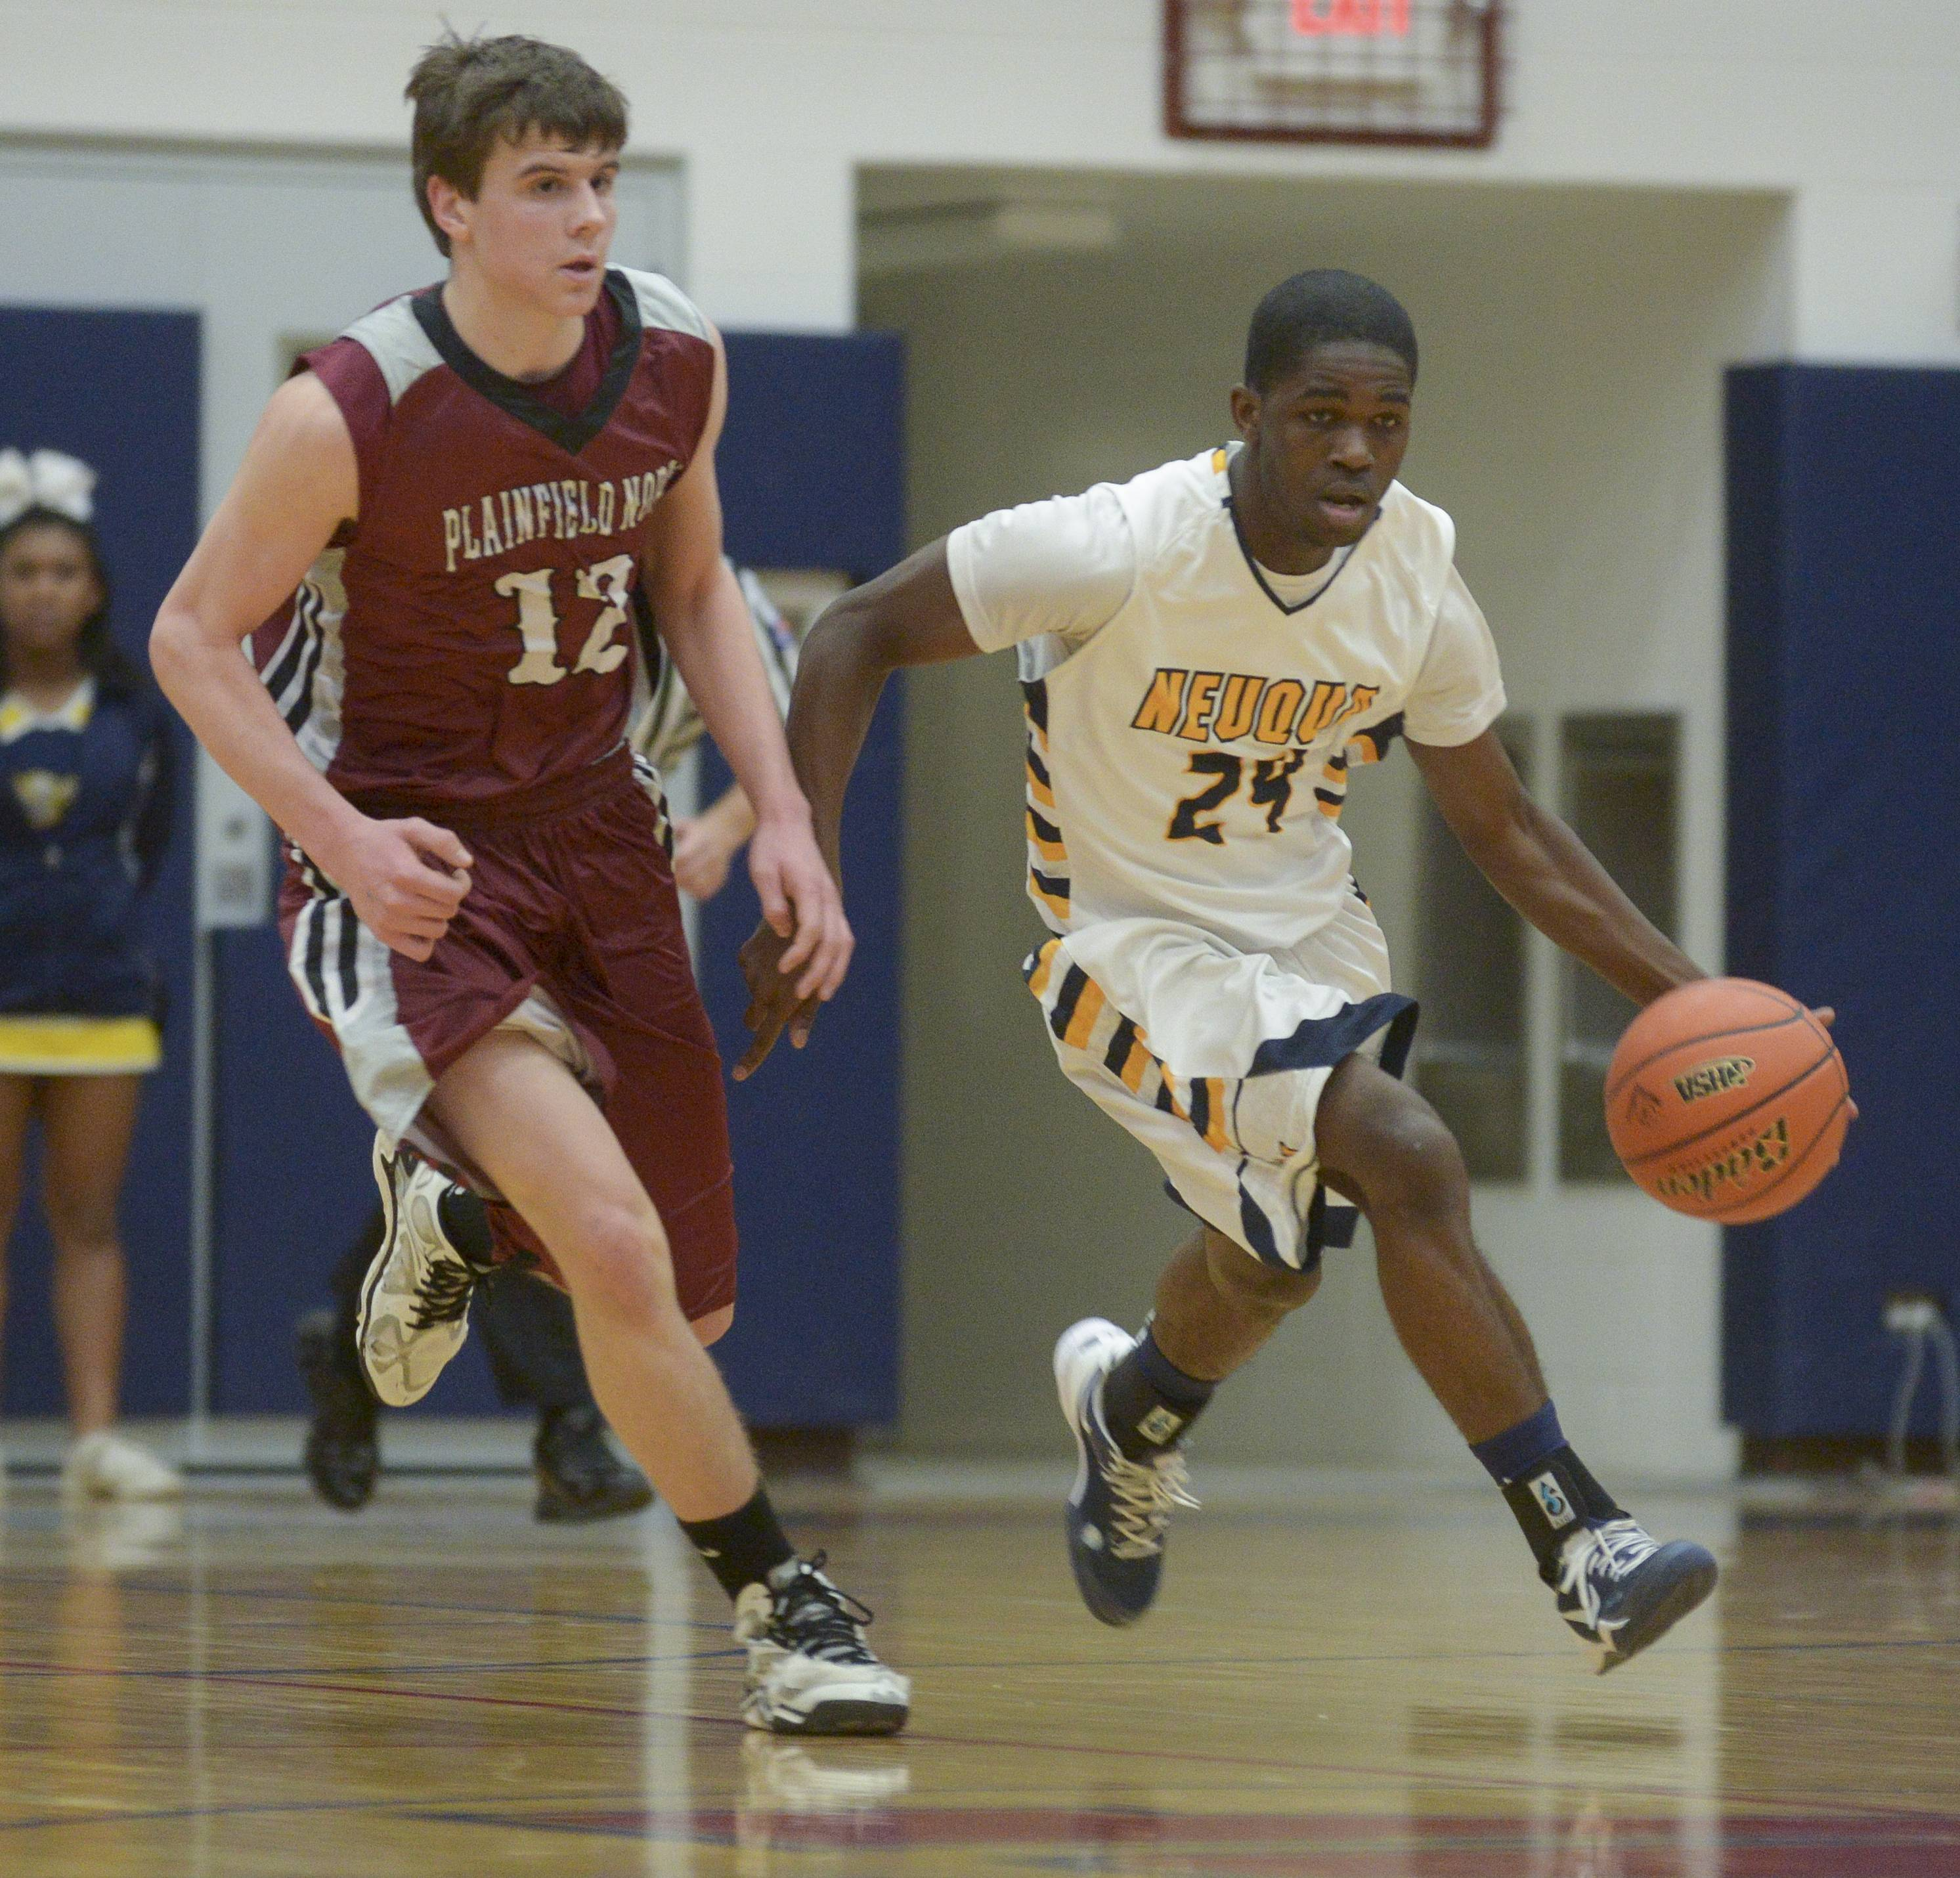 Neuqua Valley's Demond George drives around down court past Plainfield North's Trevor Stumpe.